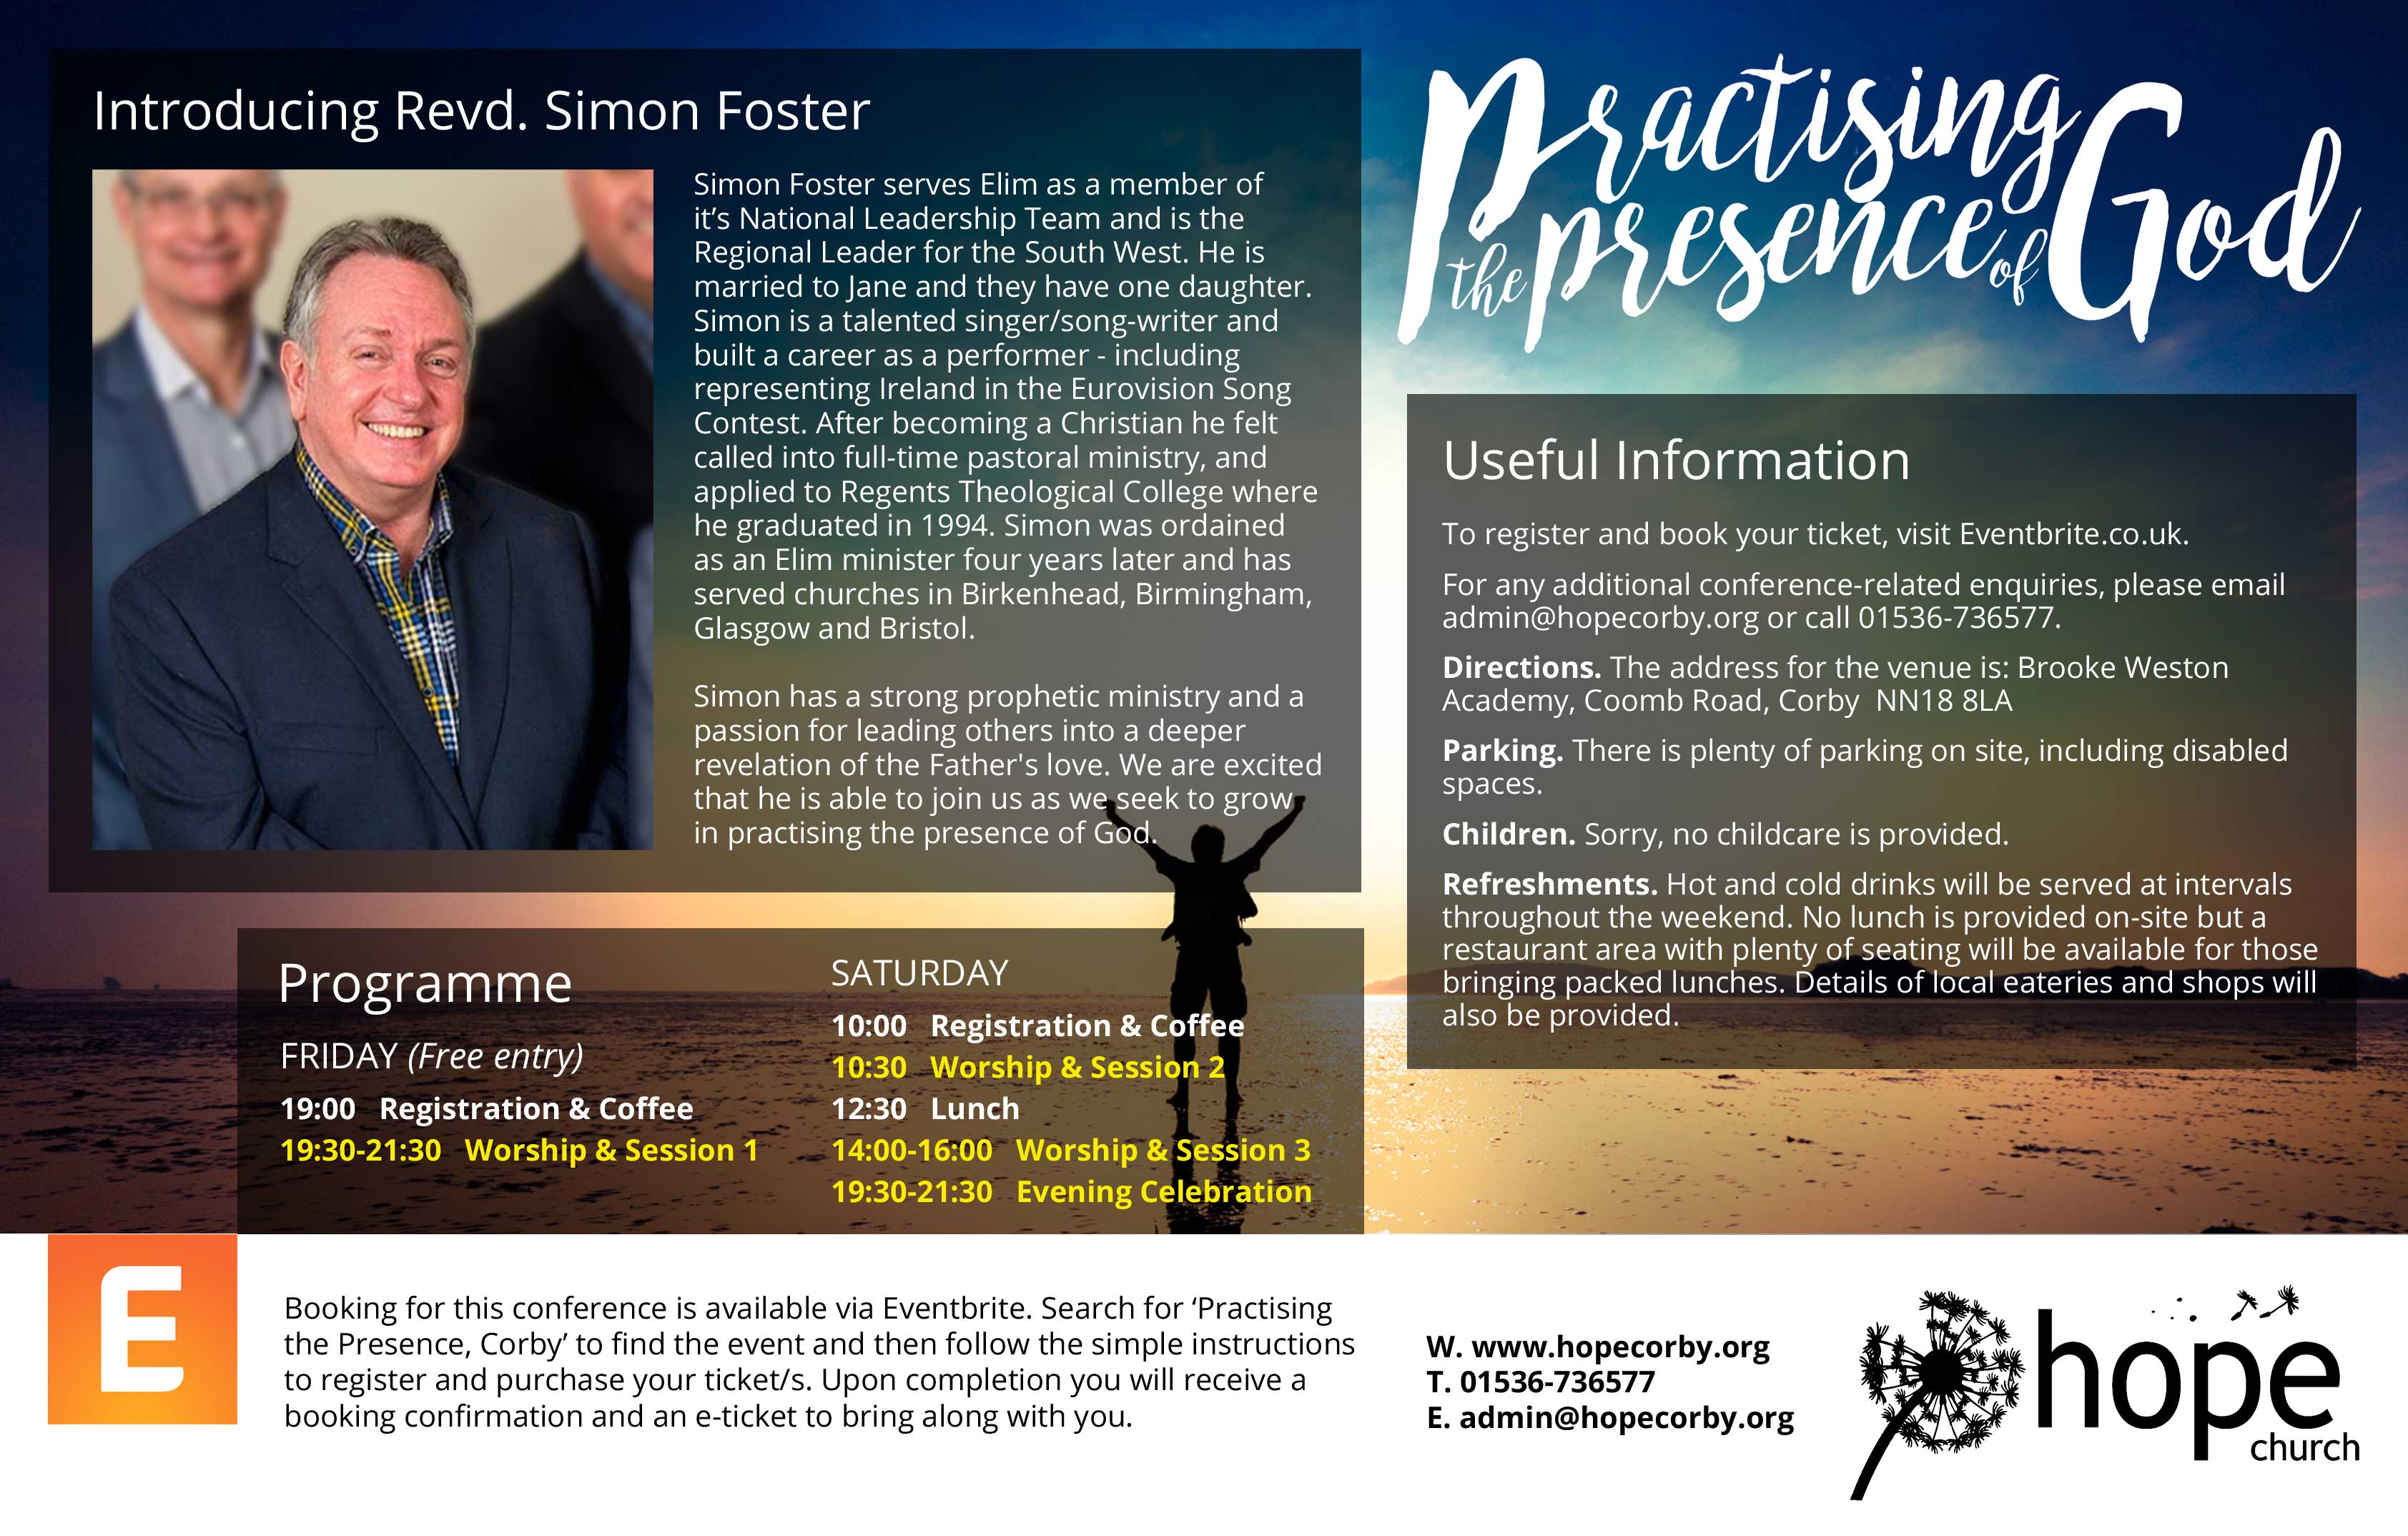 Practising the Presence - information